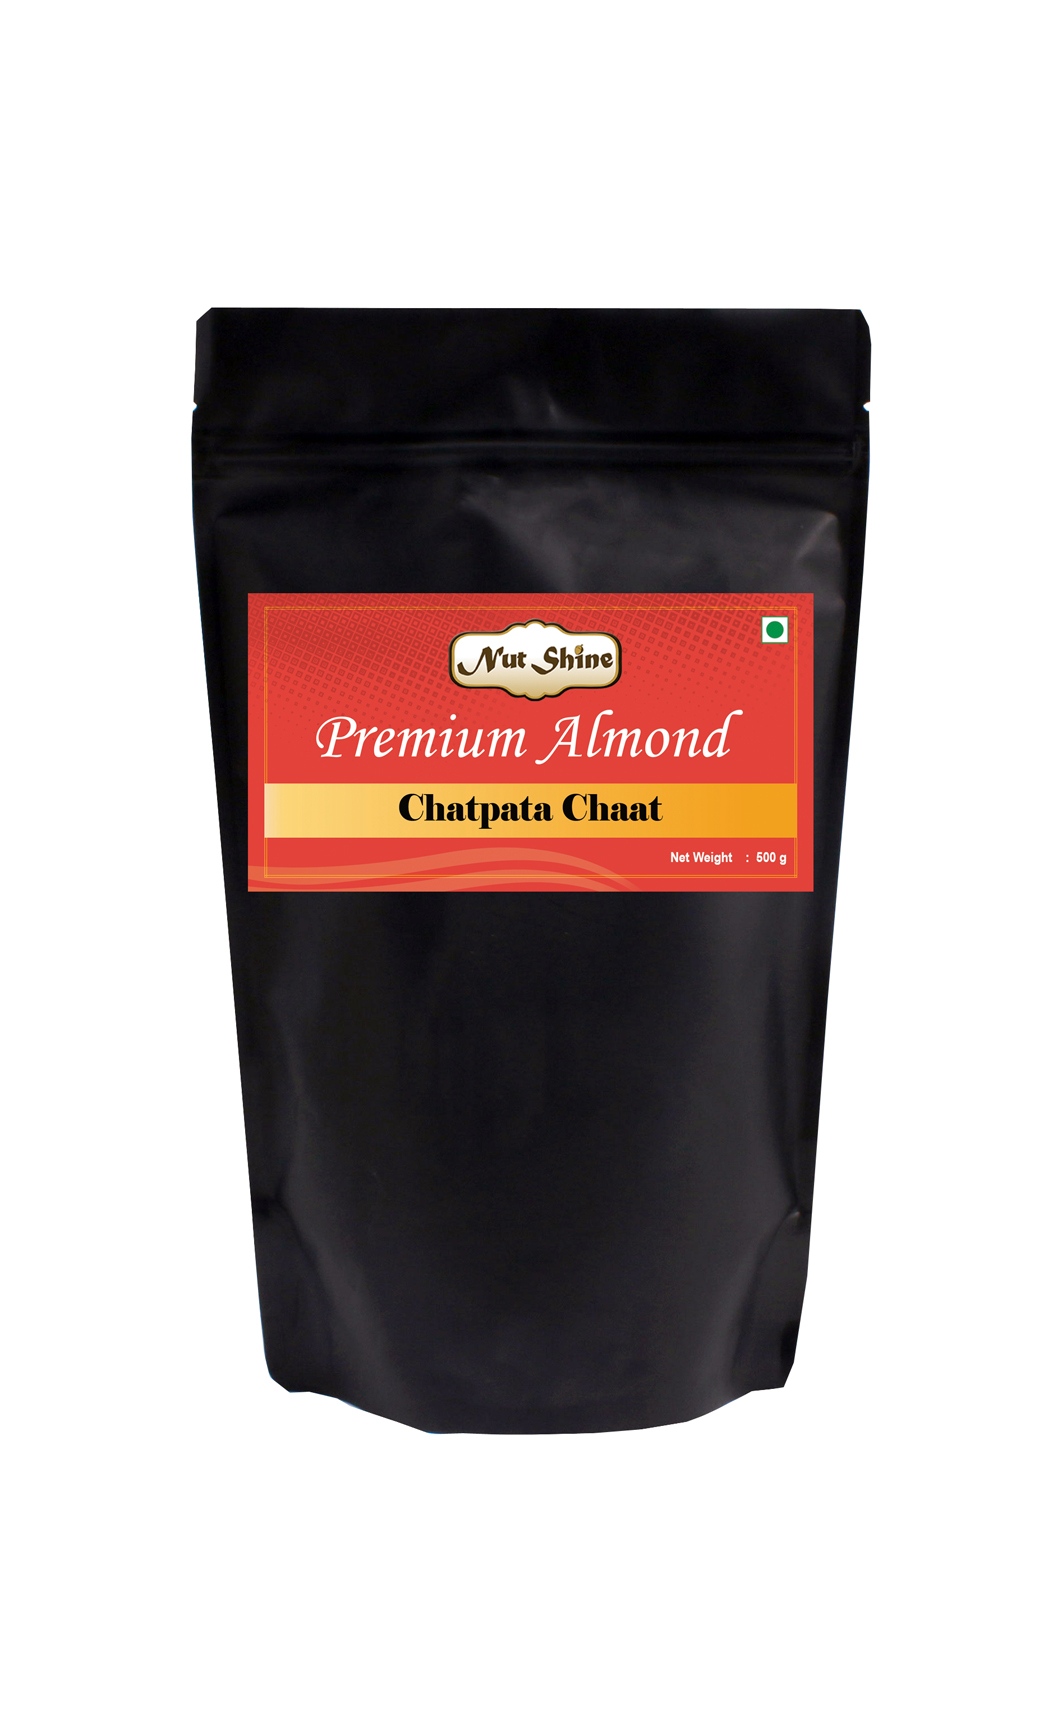 Chatpata Chaat Almonds 500gms - Buy Online